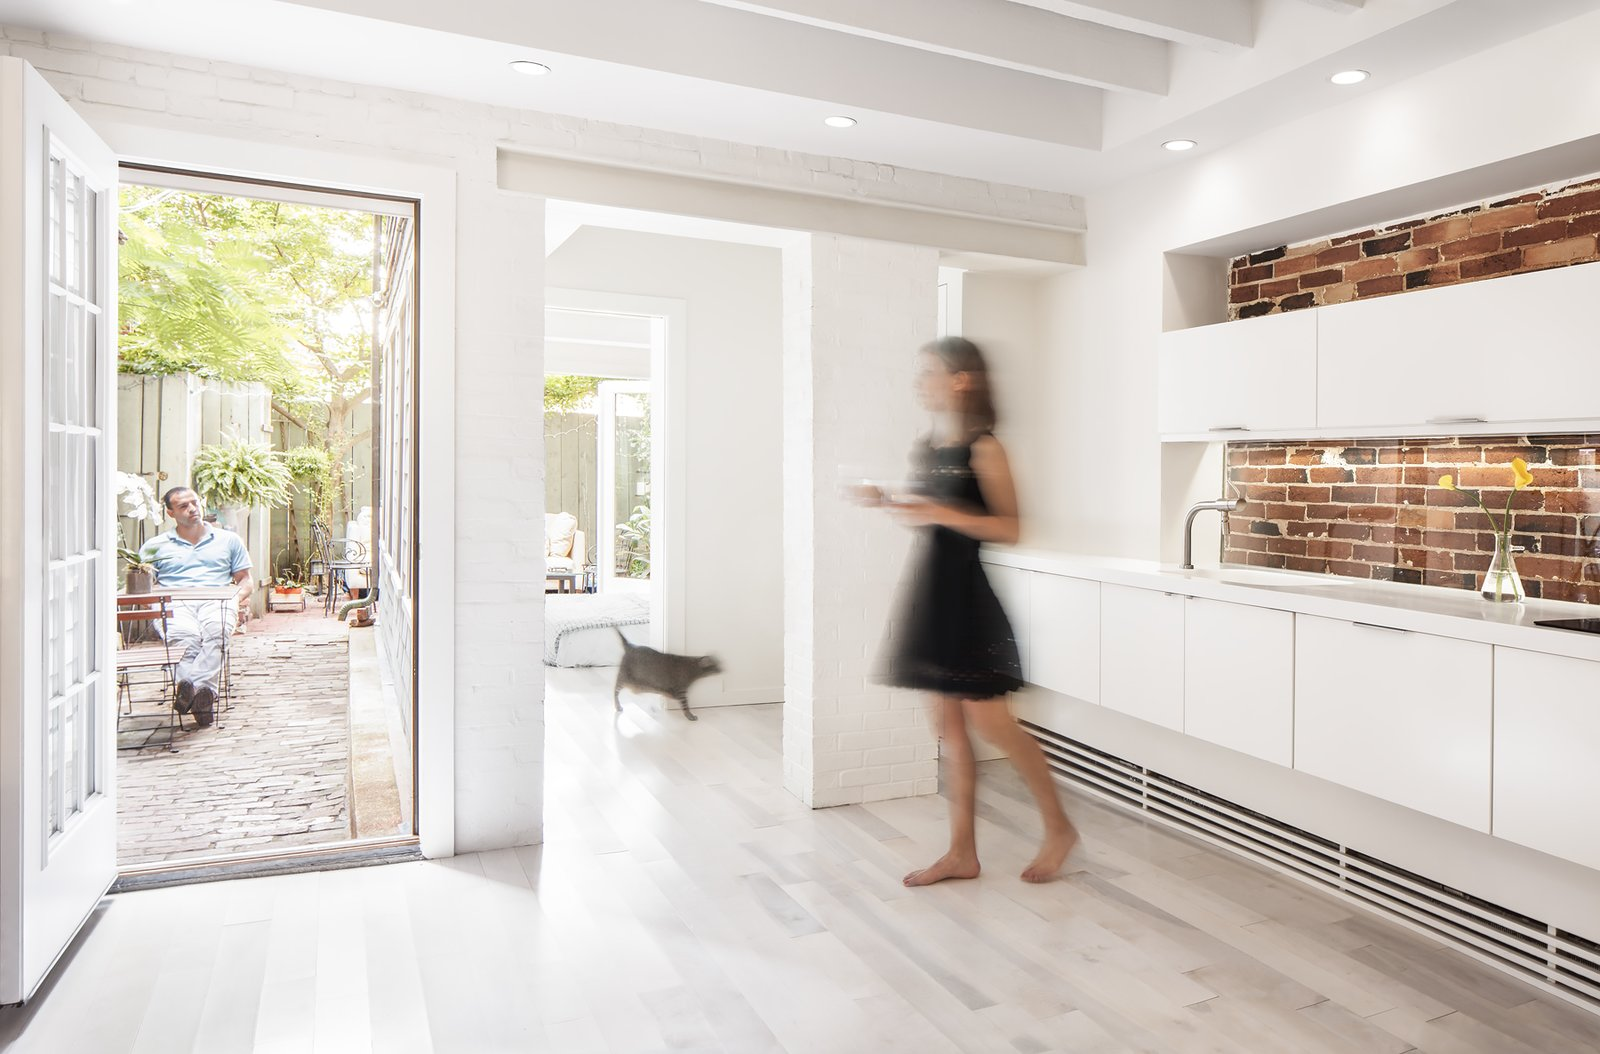 Kitchen, White Cabinet, Light Hardwood Floor, and Recessed Lighting Architects who practice in dense cities know its almost impossible to add square footage to an apartment. Yet at a garden-level residence in Boston's historic Beacon Hill neighborhood, Chris Greenawalt of Bunker Workshop was able to unearth 70 square feet of living space through a little excavation.  Photo 1 of 5 in An Archaeological Renovation Adds Precious Space to a Tiny Boston Apartment from Beacon Hill